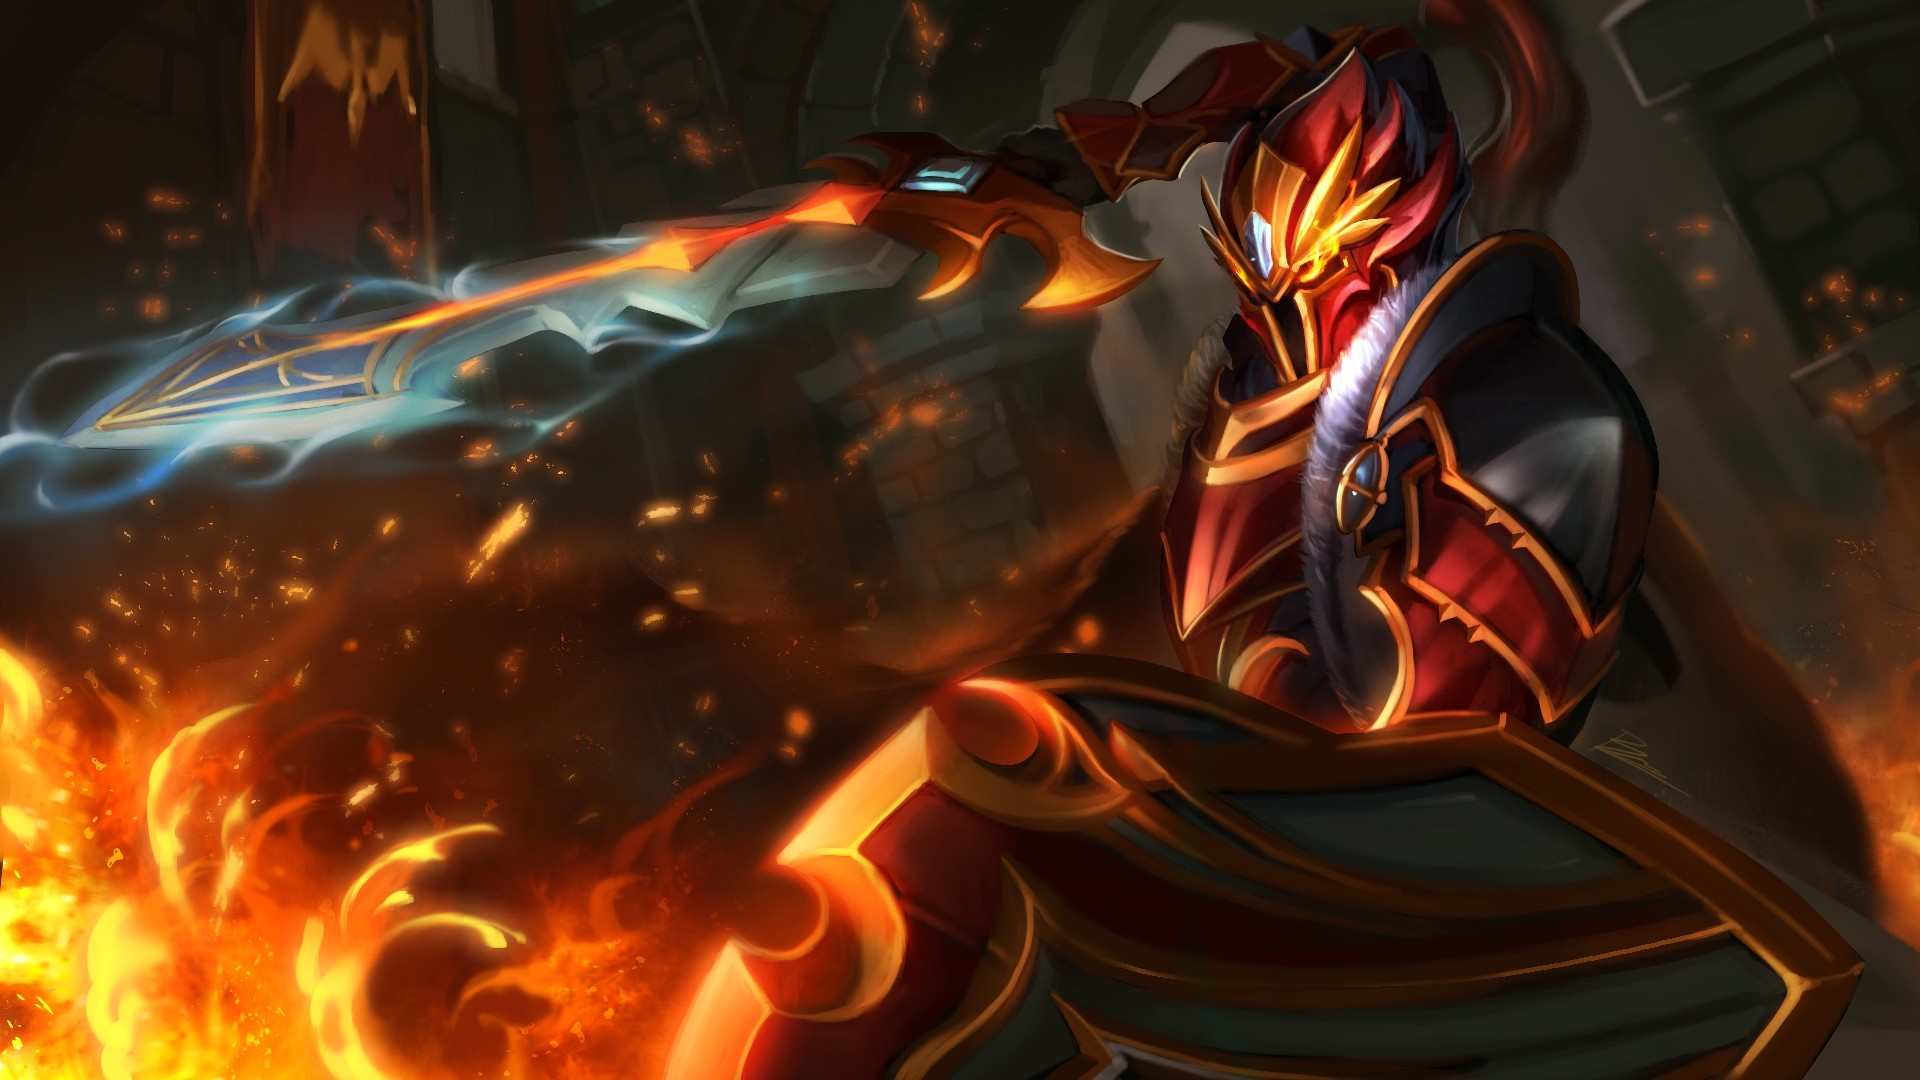 Beautiful Dragon Knight Wallpapers   D-Screens Backgrounds Collection